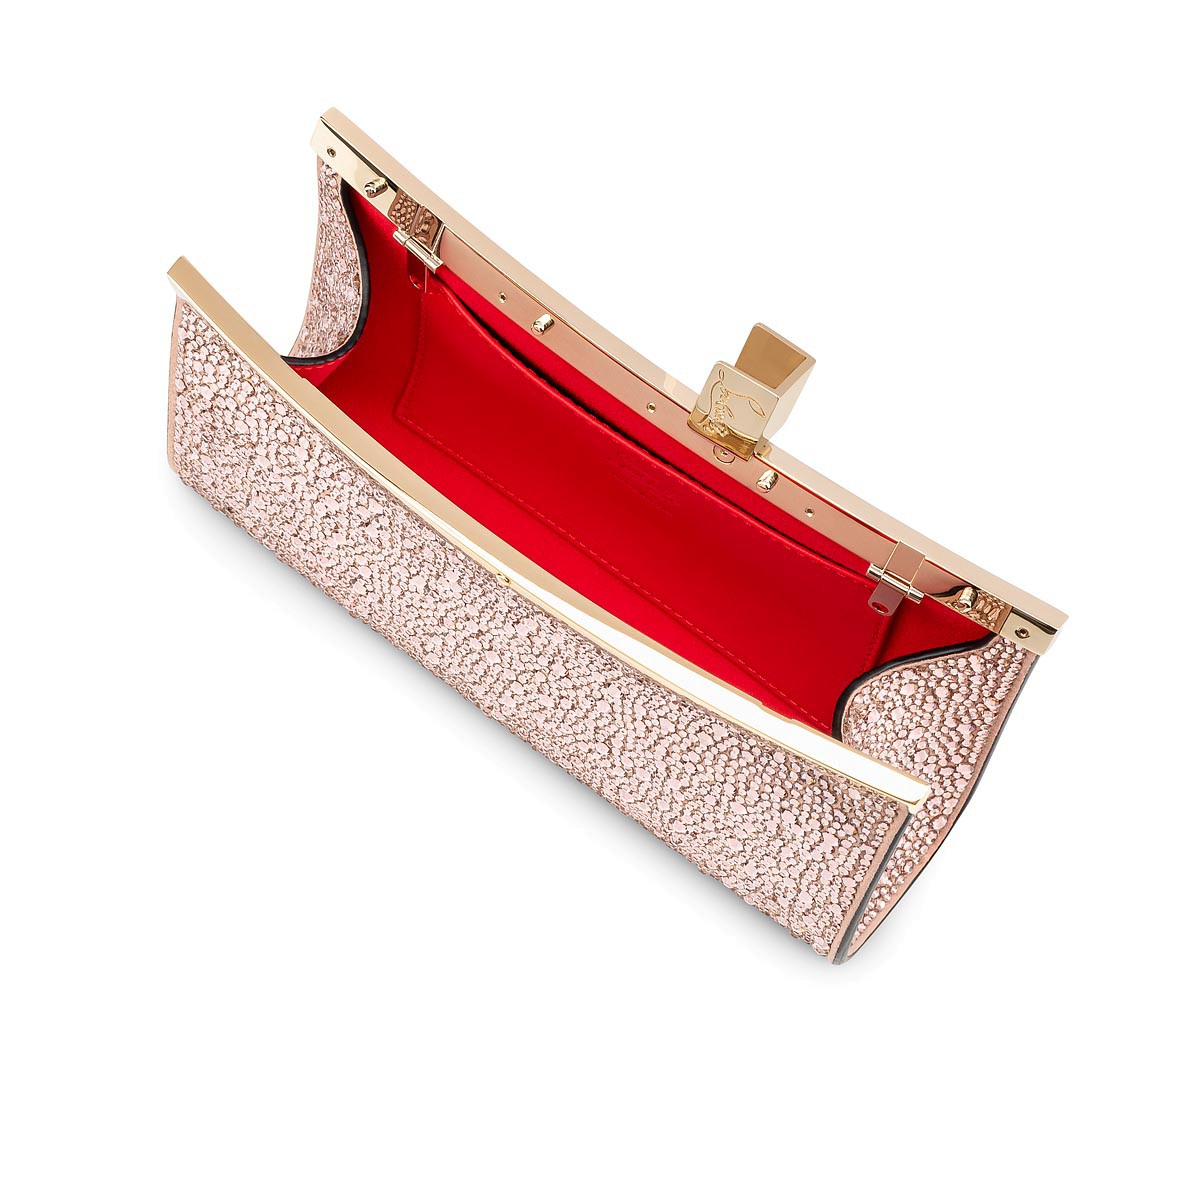 Bags - Palmette Small Strass - Christian Louboutin